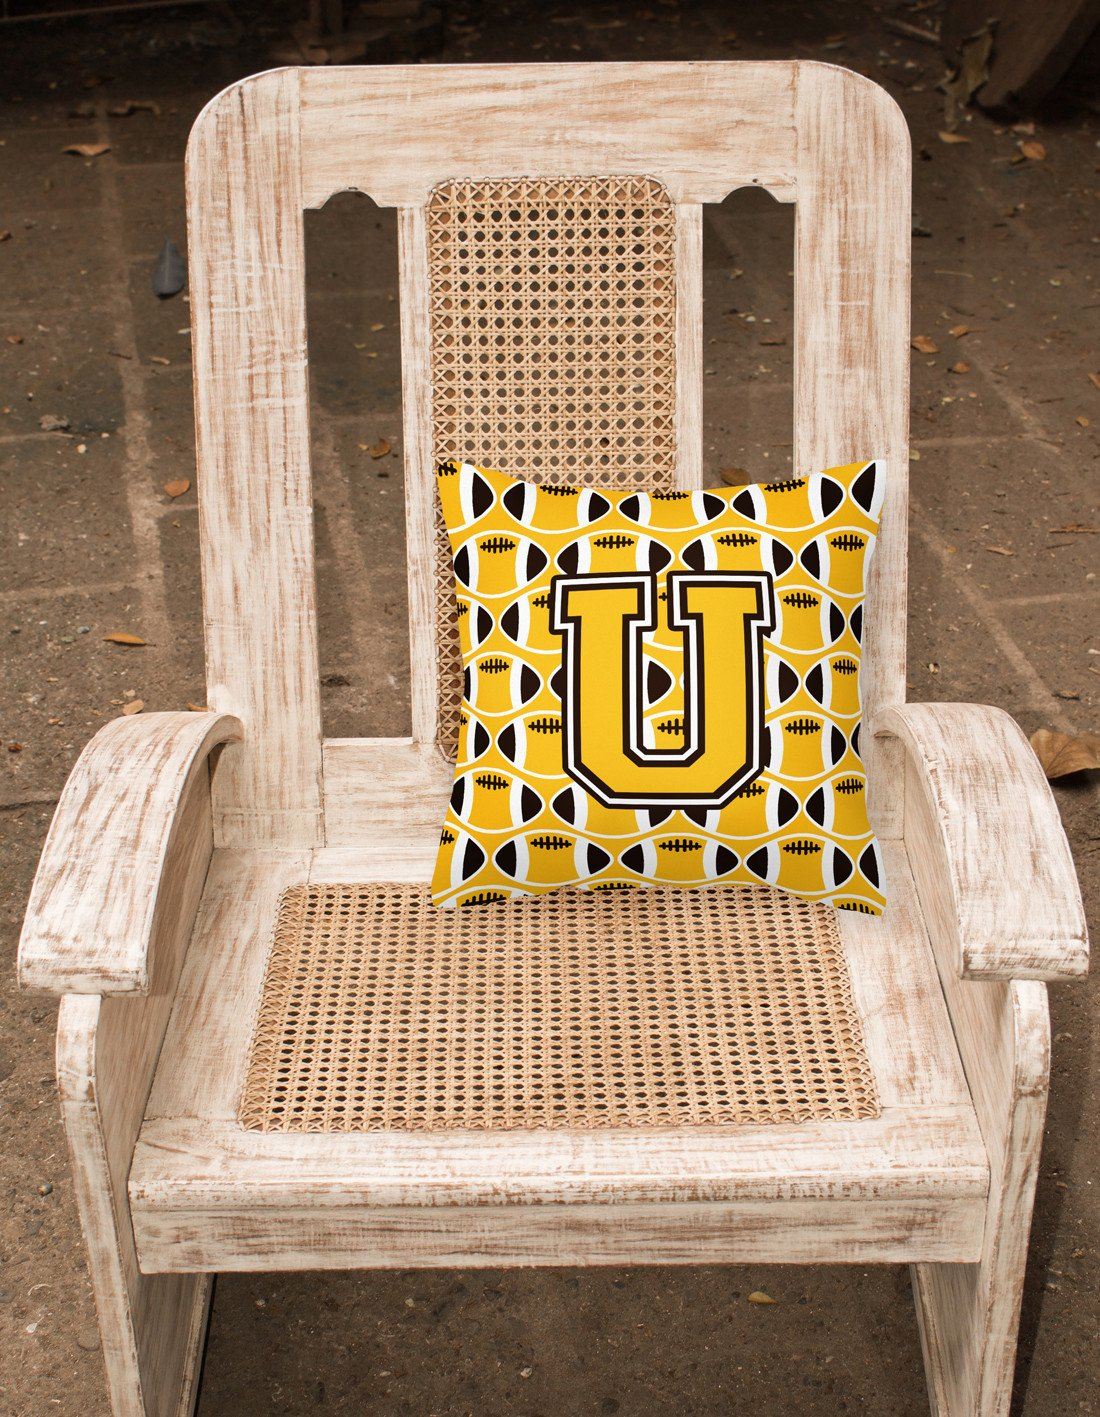 Letter U Football Black, Old Gold and White Fabric Decorative Pillow CJ1080-UPW1414 by Caroline's Treasures